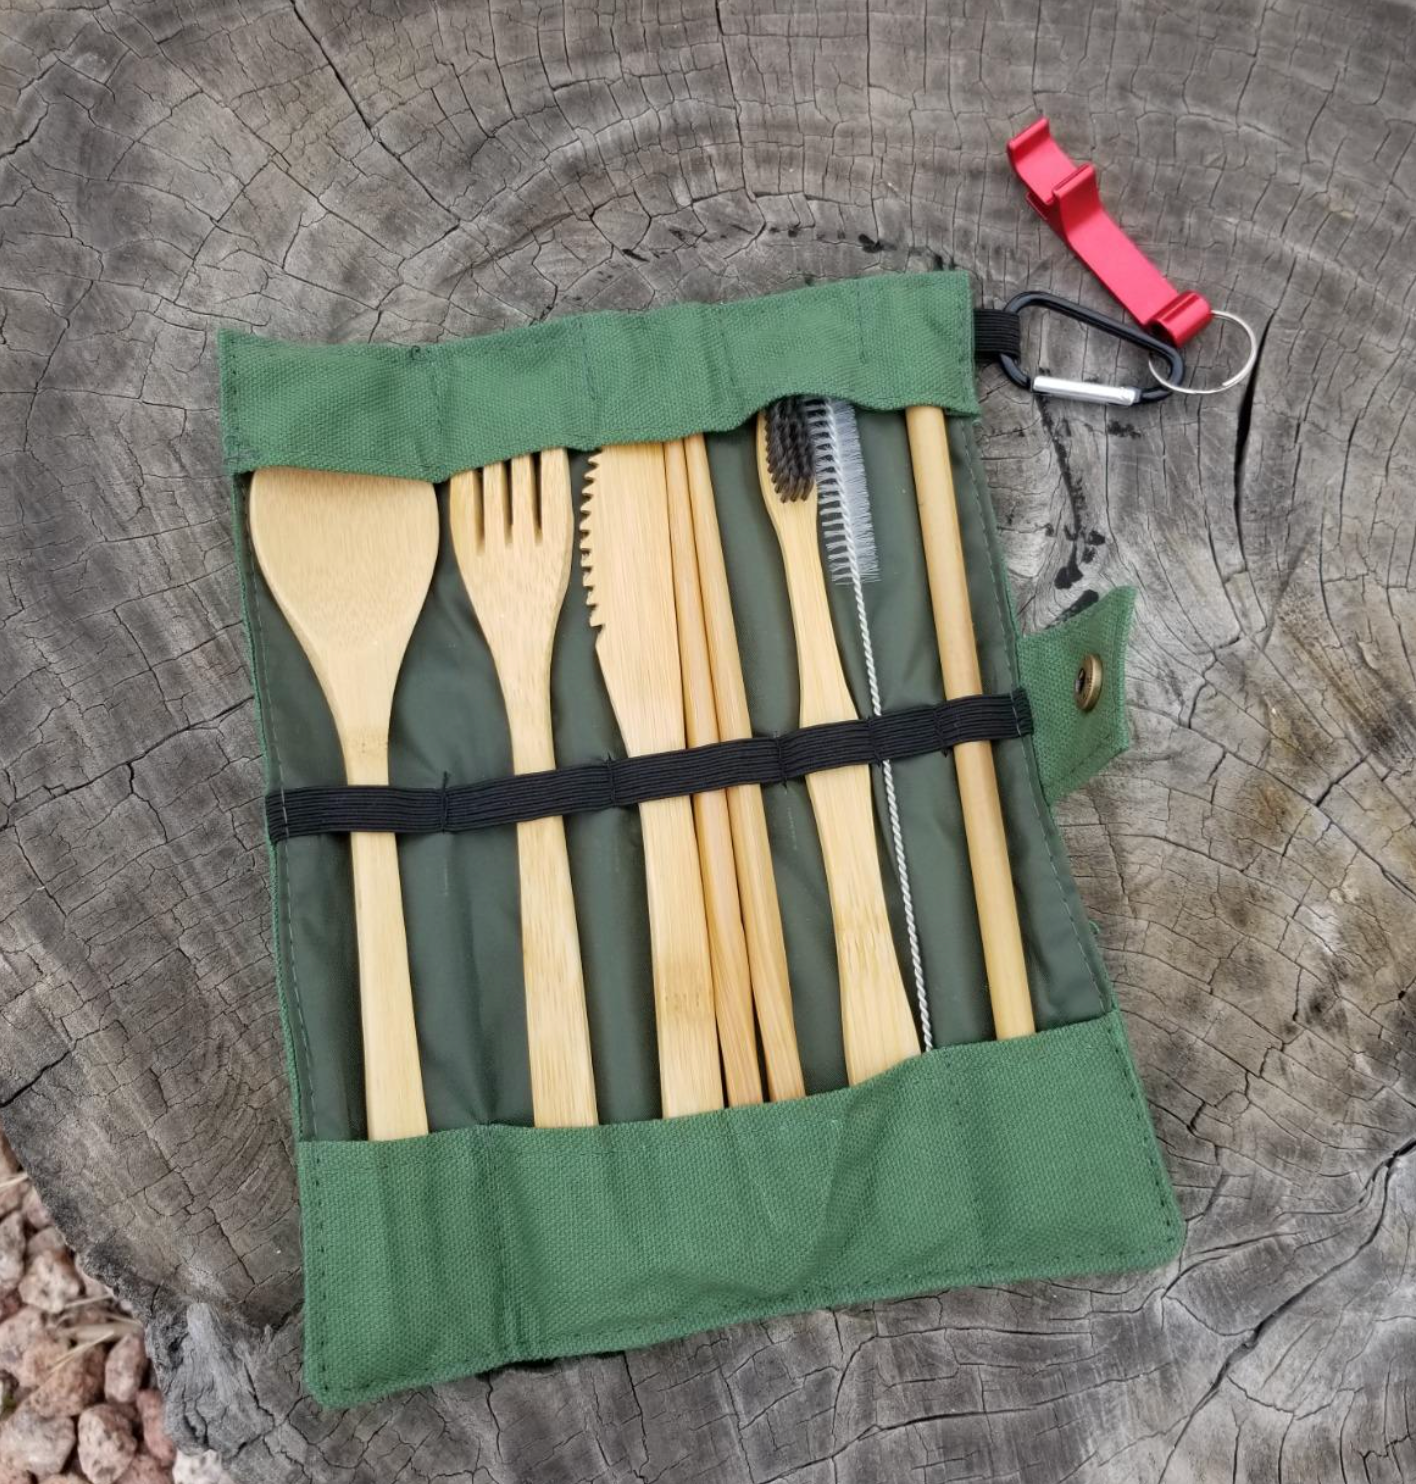 reviewer photo showing the bamboo cutlery set in its packaging